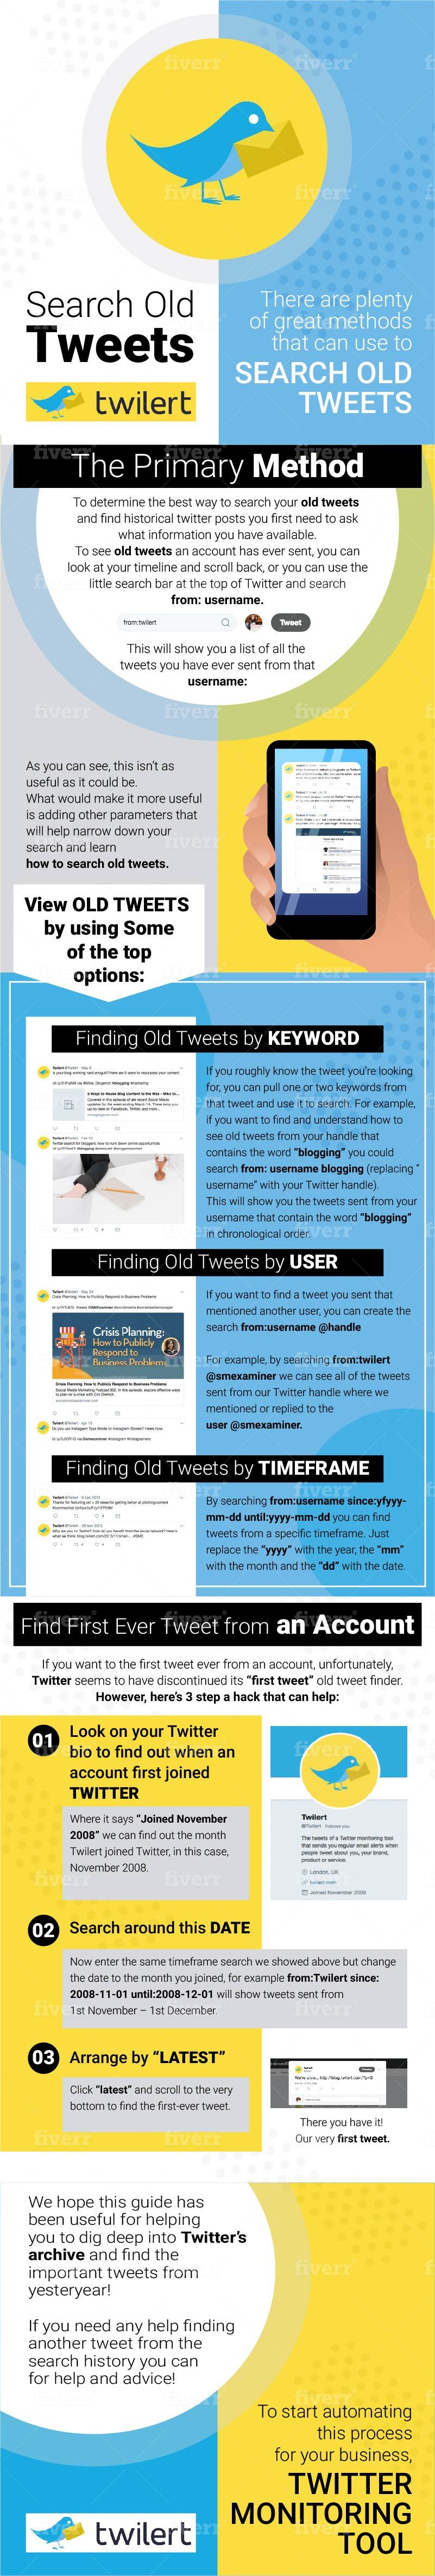 search old tweets infographic